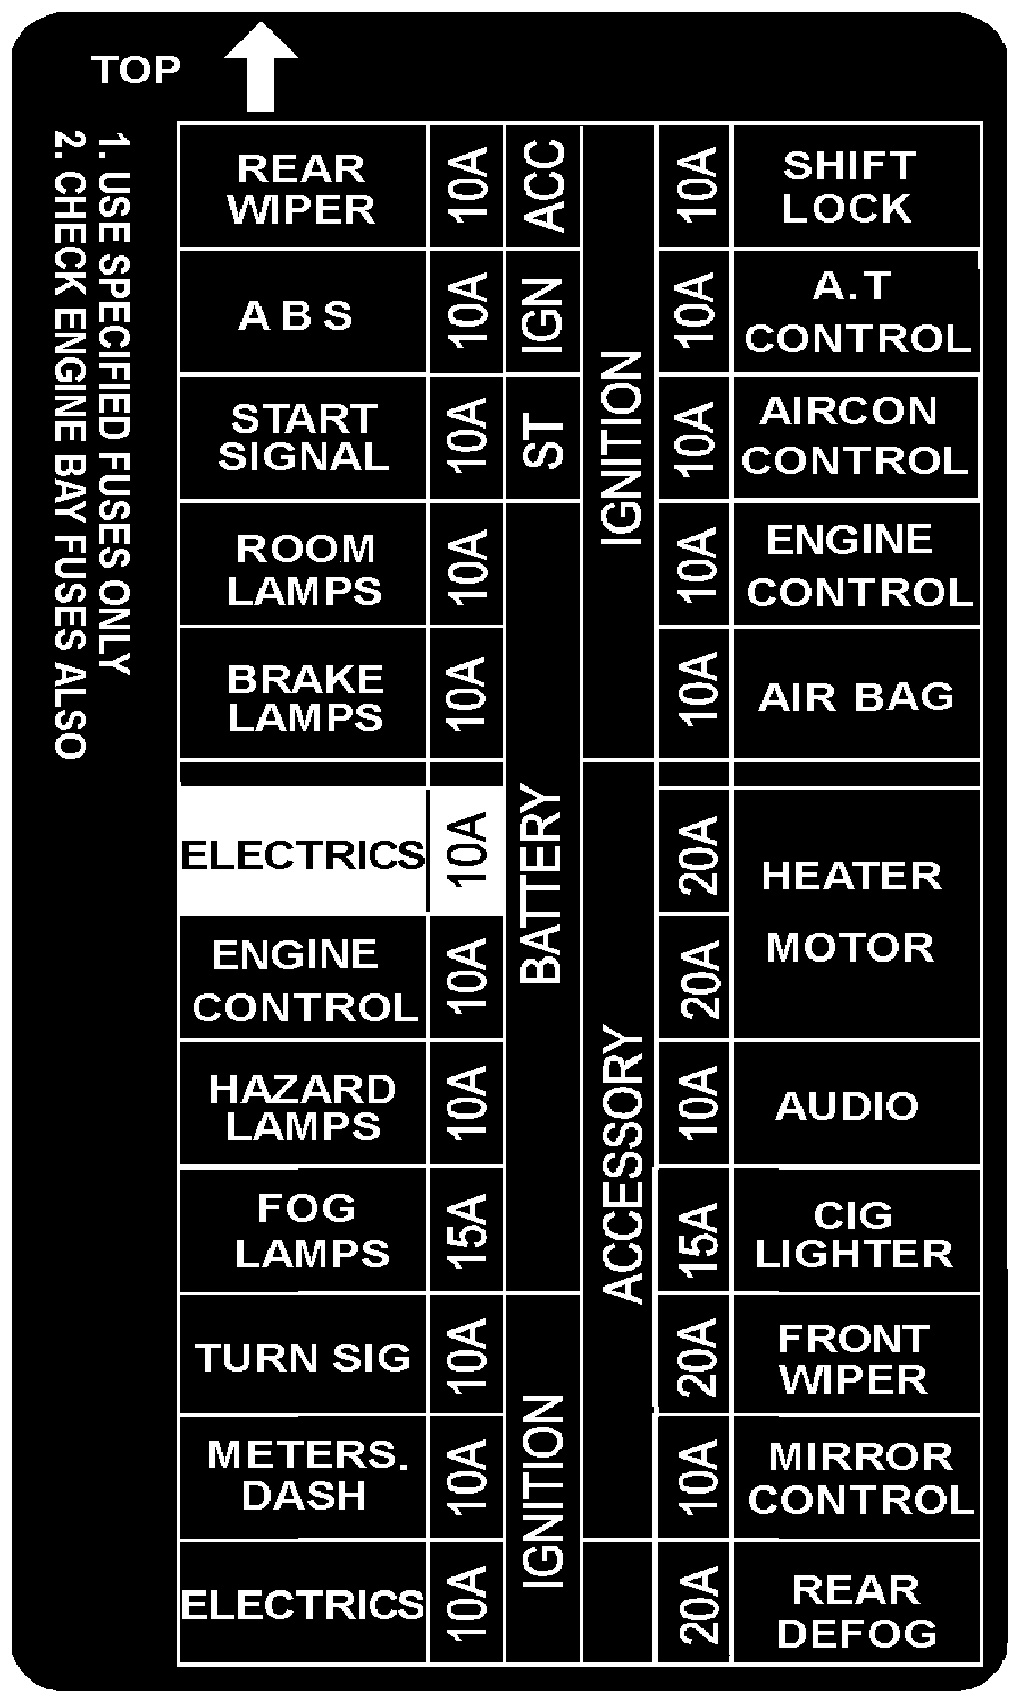 fuse for dash lights rear lights general maintenance nissan light wiring diagram